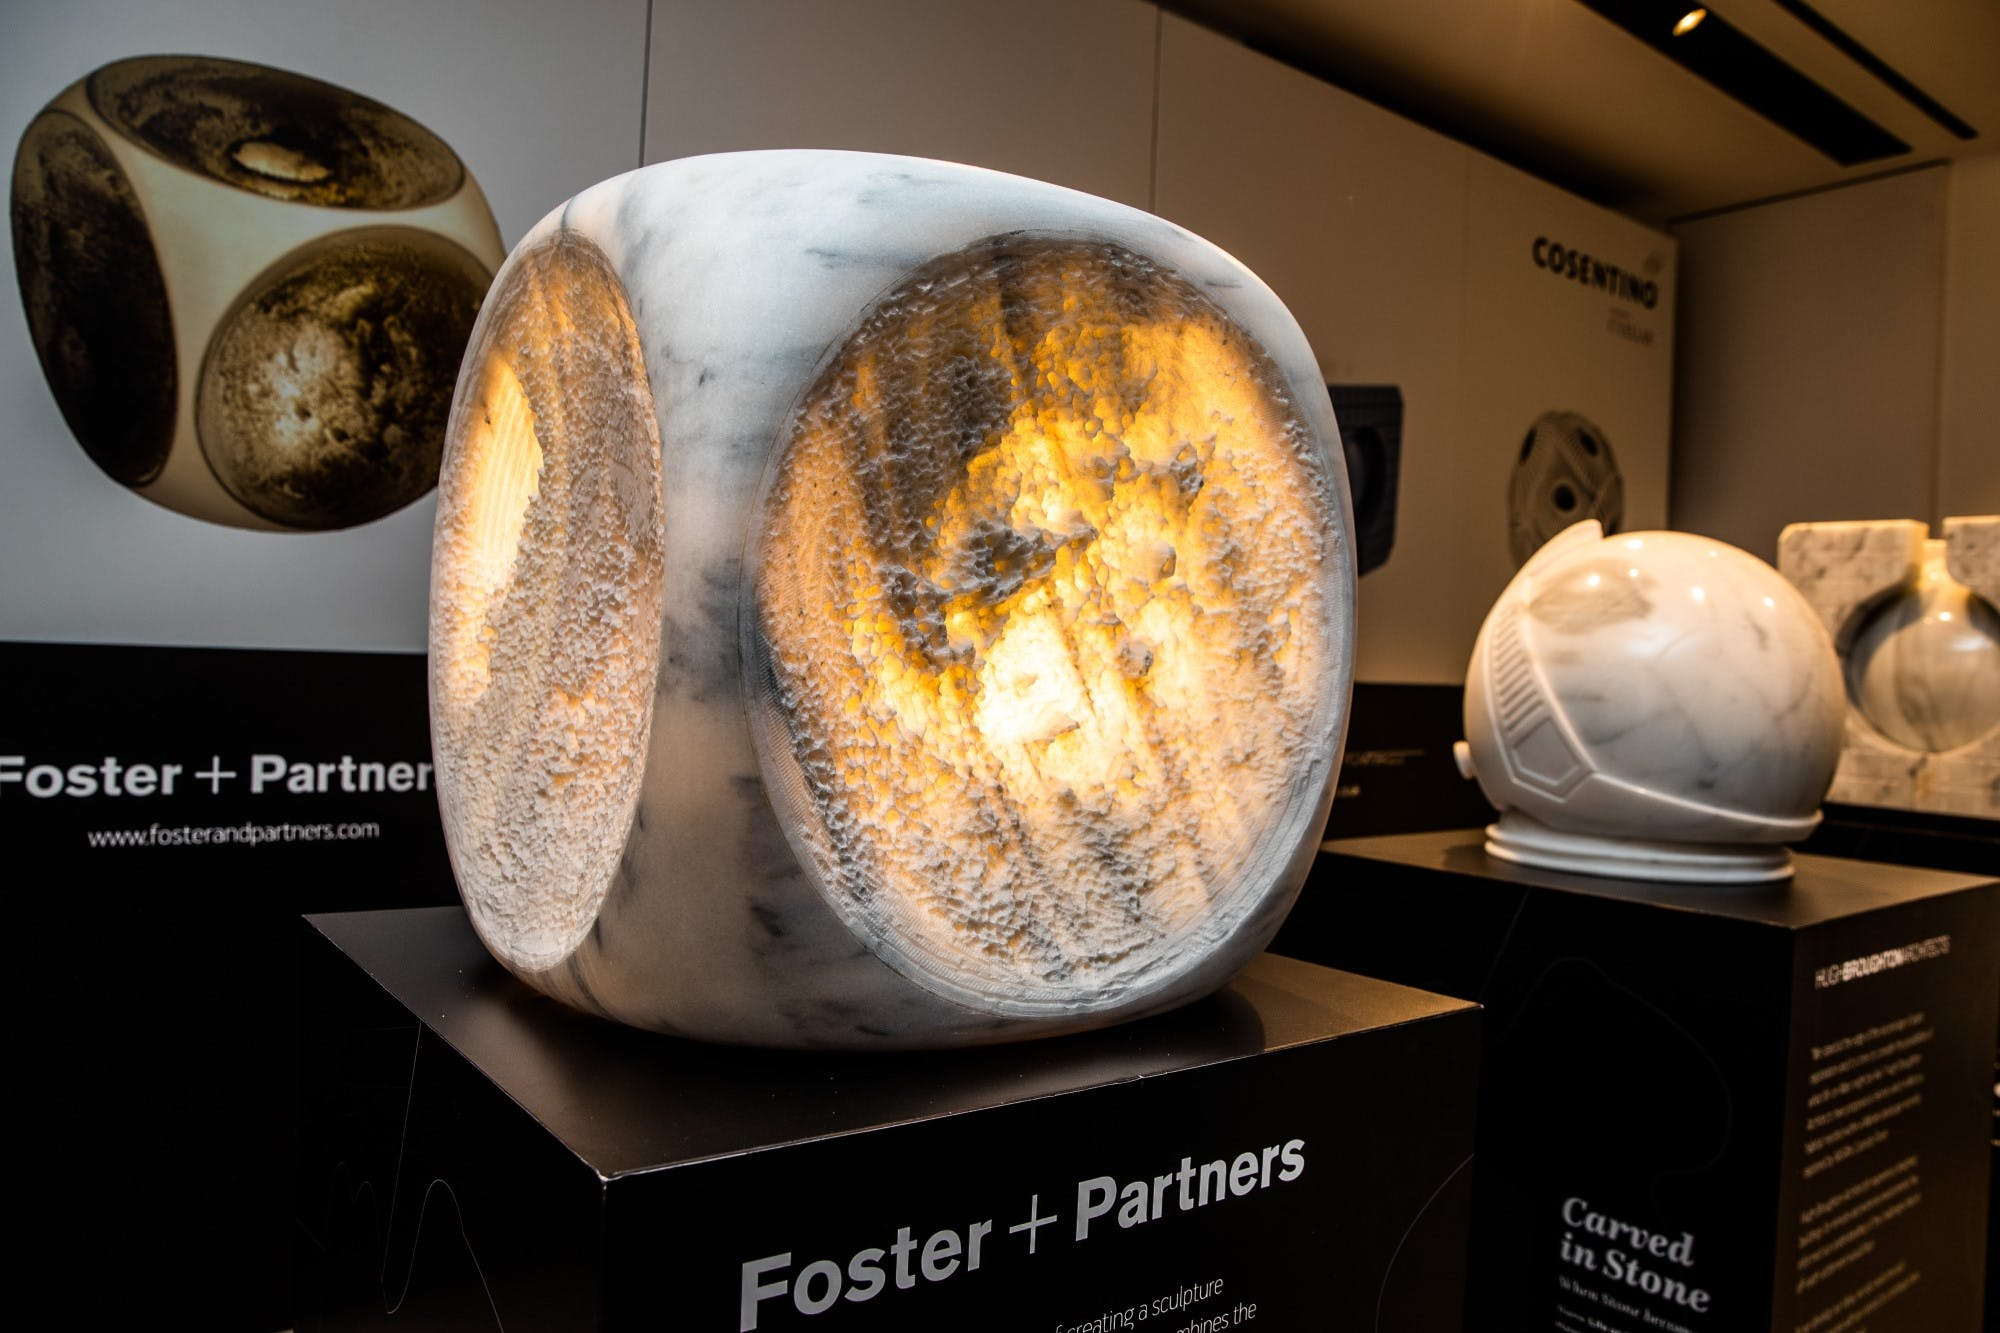 Image of Carved in Stone 6 in Cosentino Announces the Winners of its Carved in Stone Competition - Cosentino